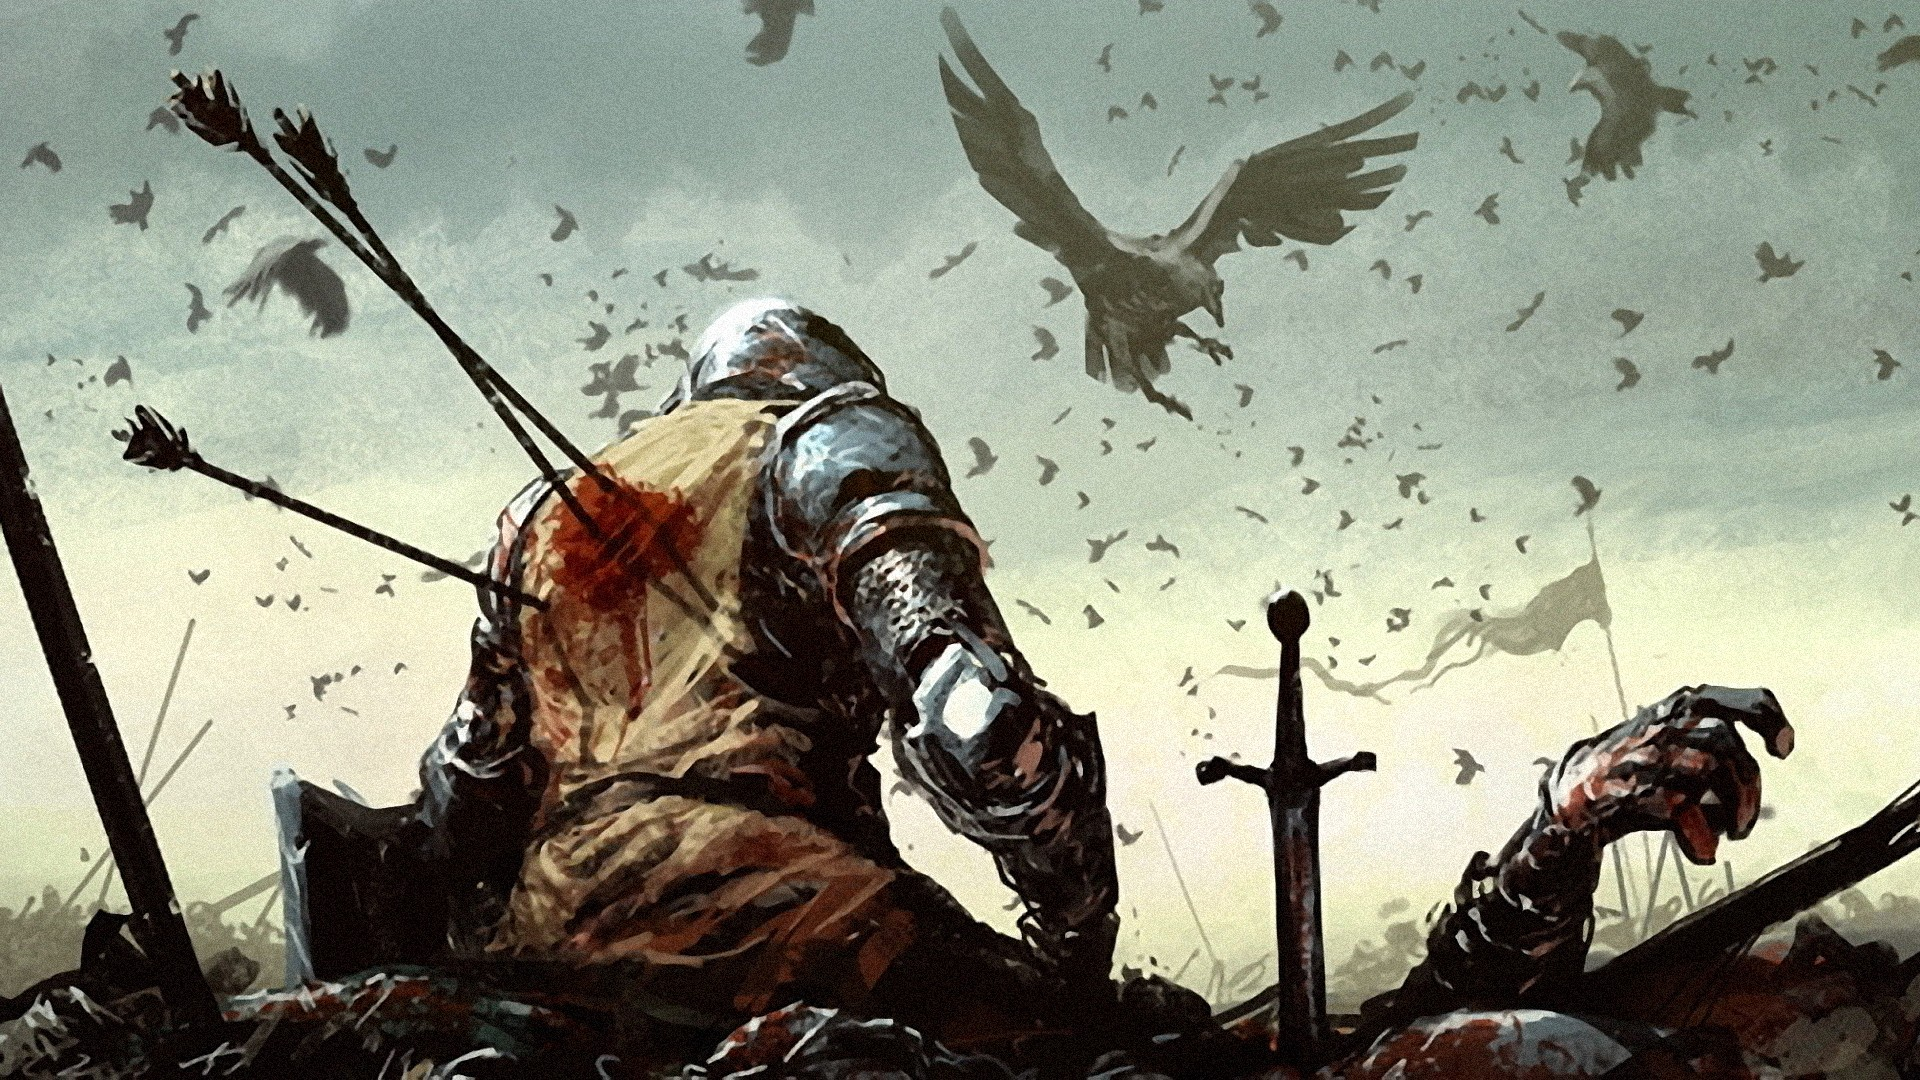 Dying-Warrior-They-are-coming-to-eat-the-fallen-wallpaper-wp3605256